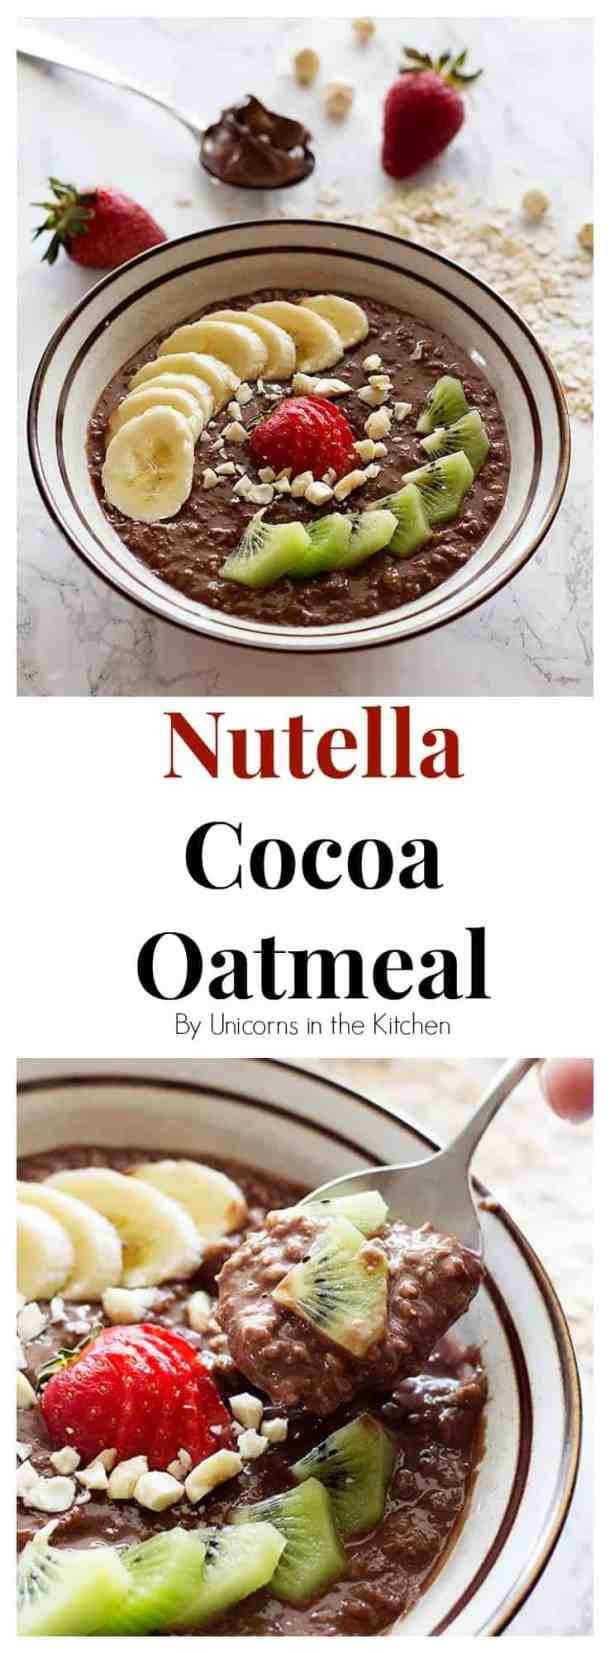 This Nutella Cocoa Oatmeal Bowl is perfect for breakfast, or any time that you crave something sweet and easy! Make it even better by adding some cocoa powder!